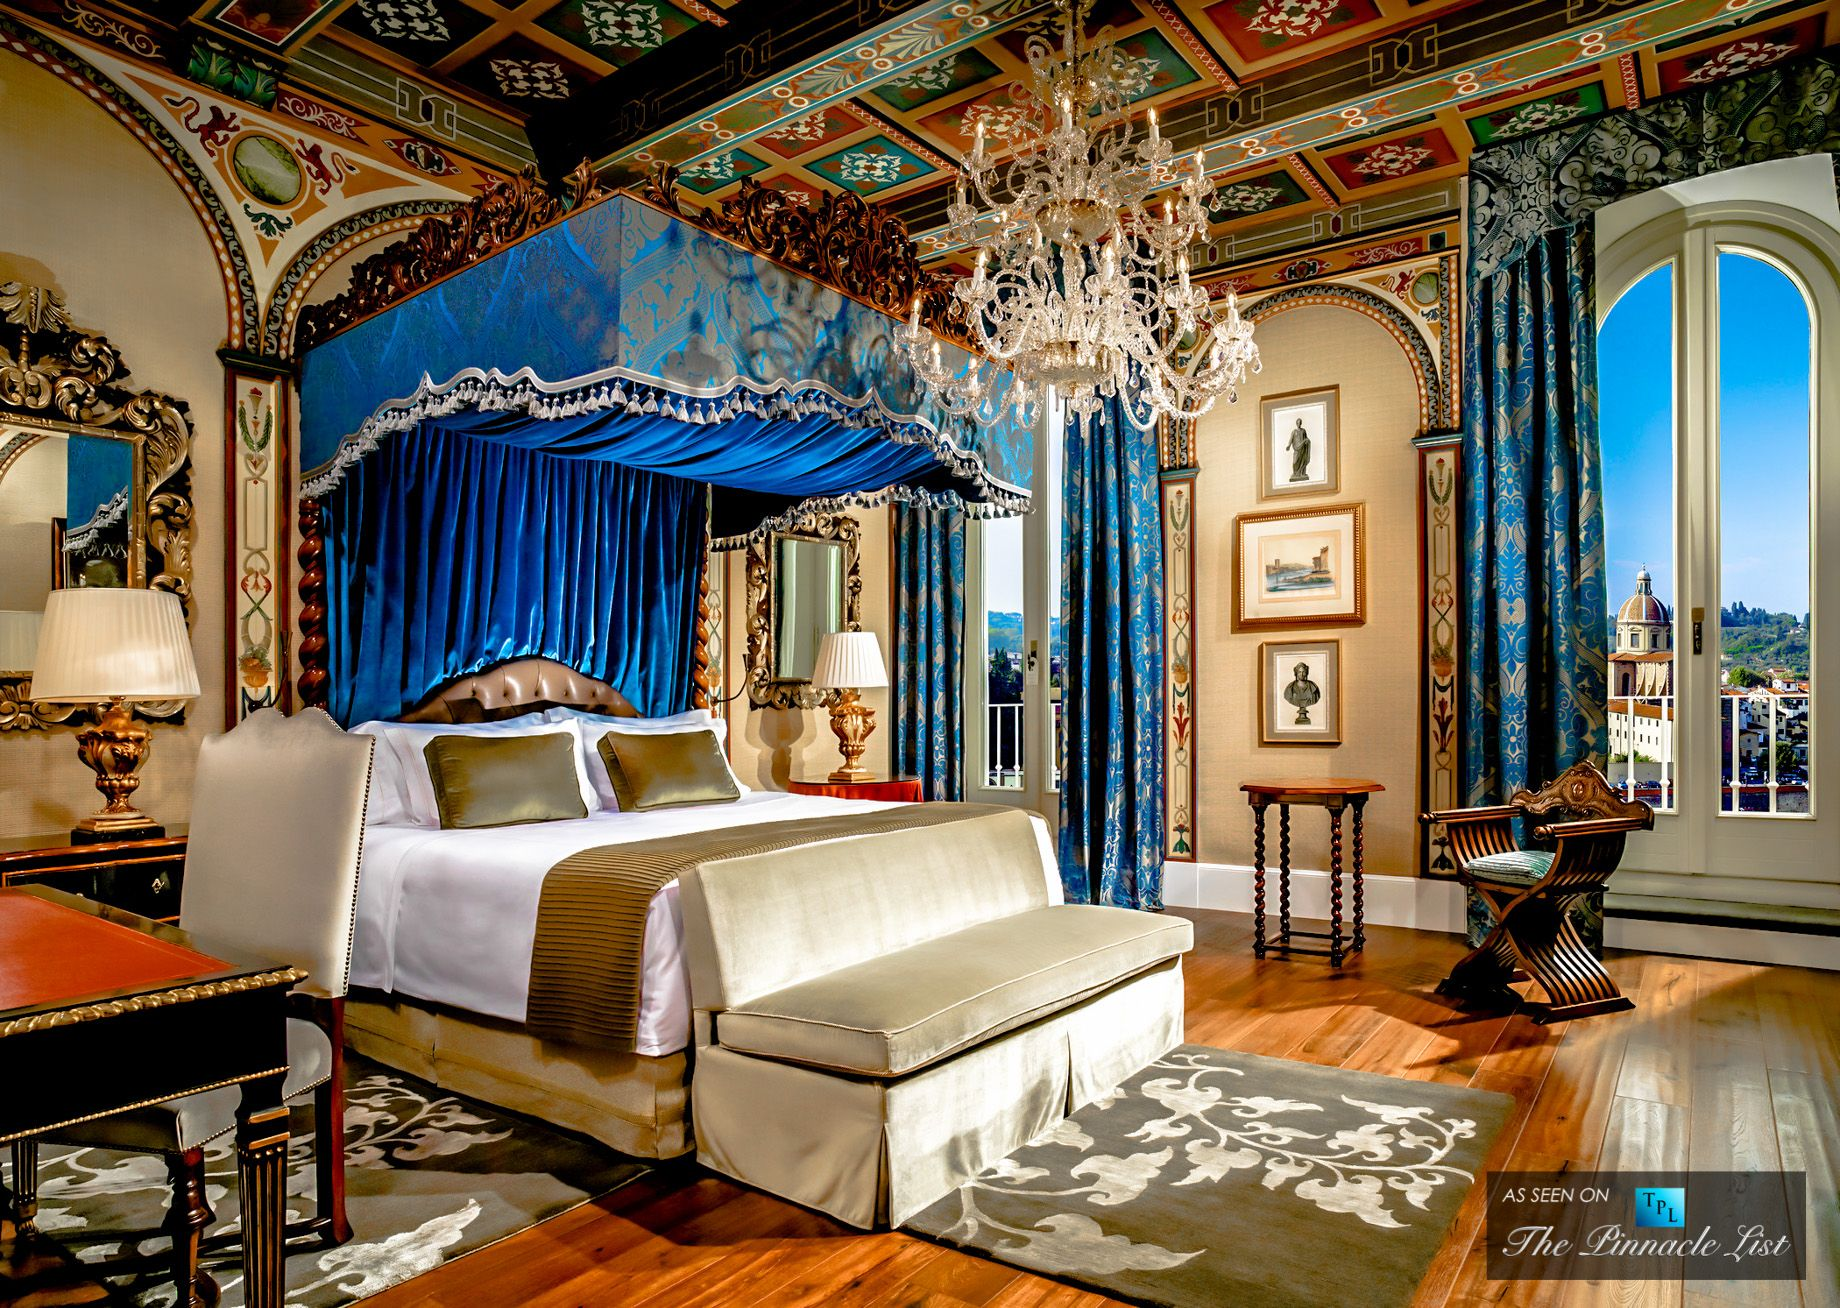 Luxury Hotel Interior Design st. regis luxury hotel - florence, italy - royal suite gioconda